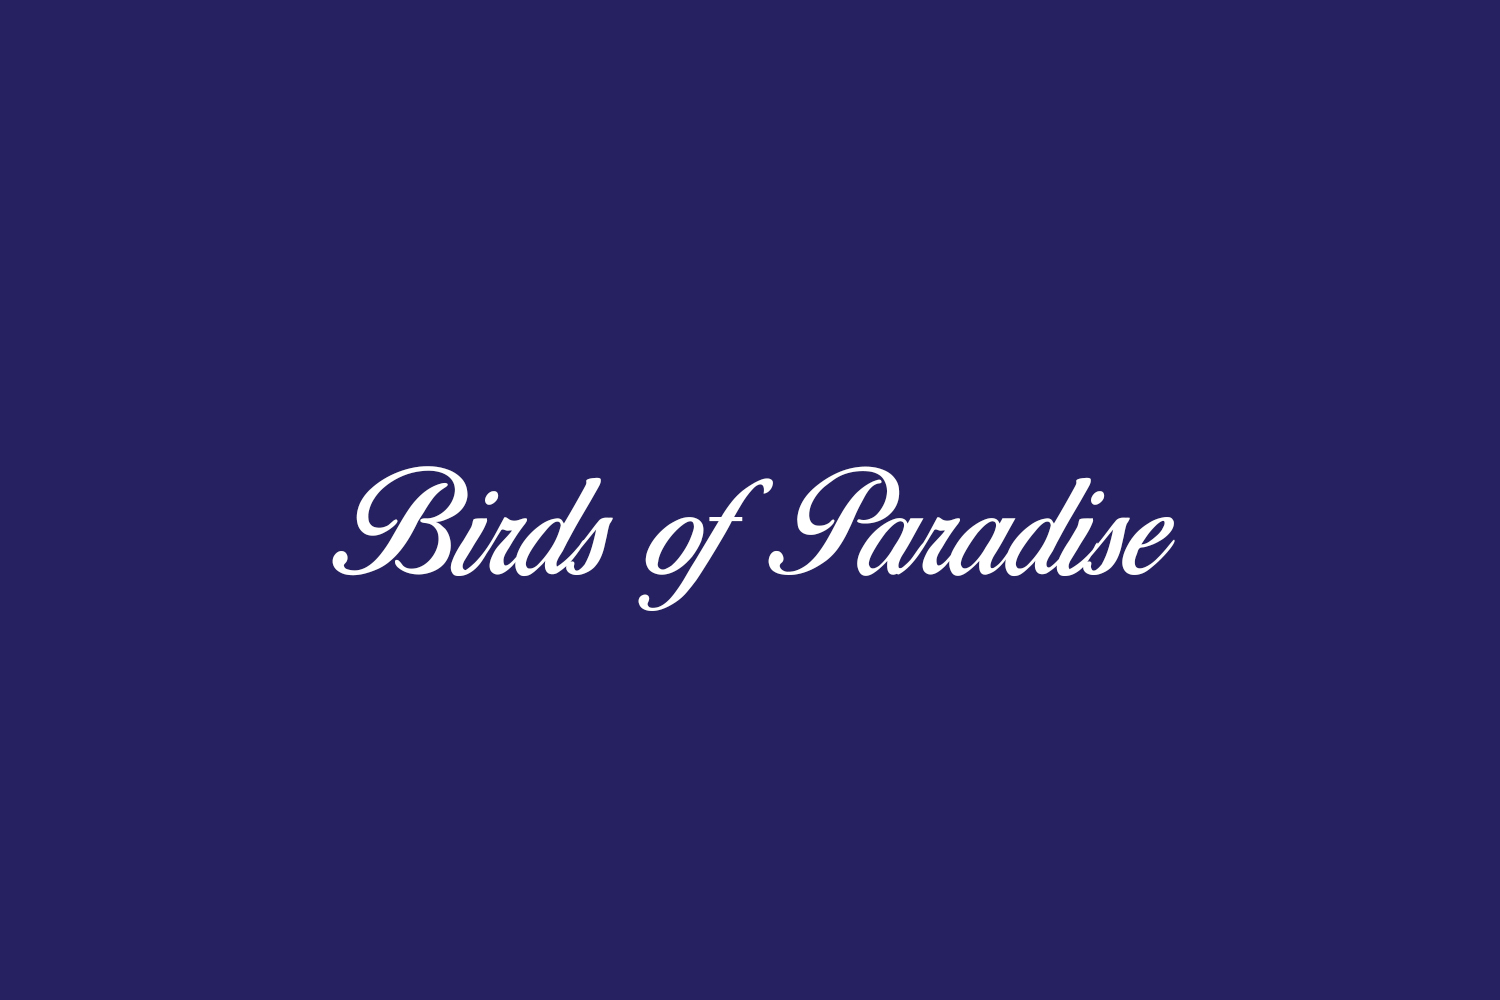 Birds of Paradise Free Font